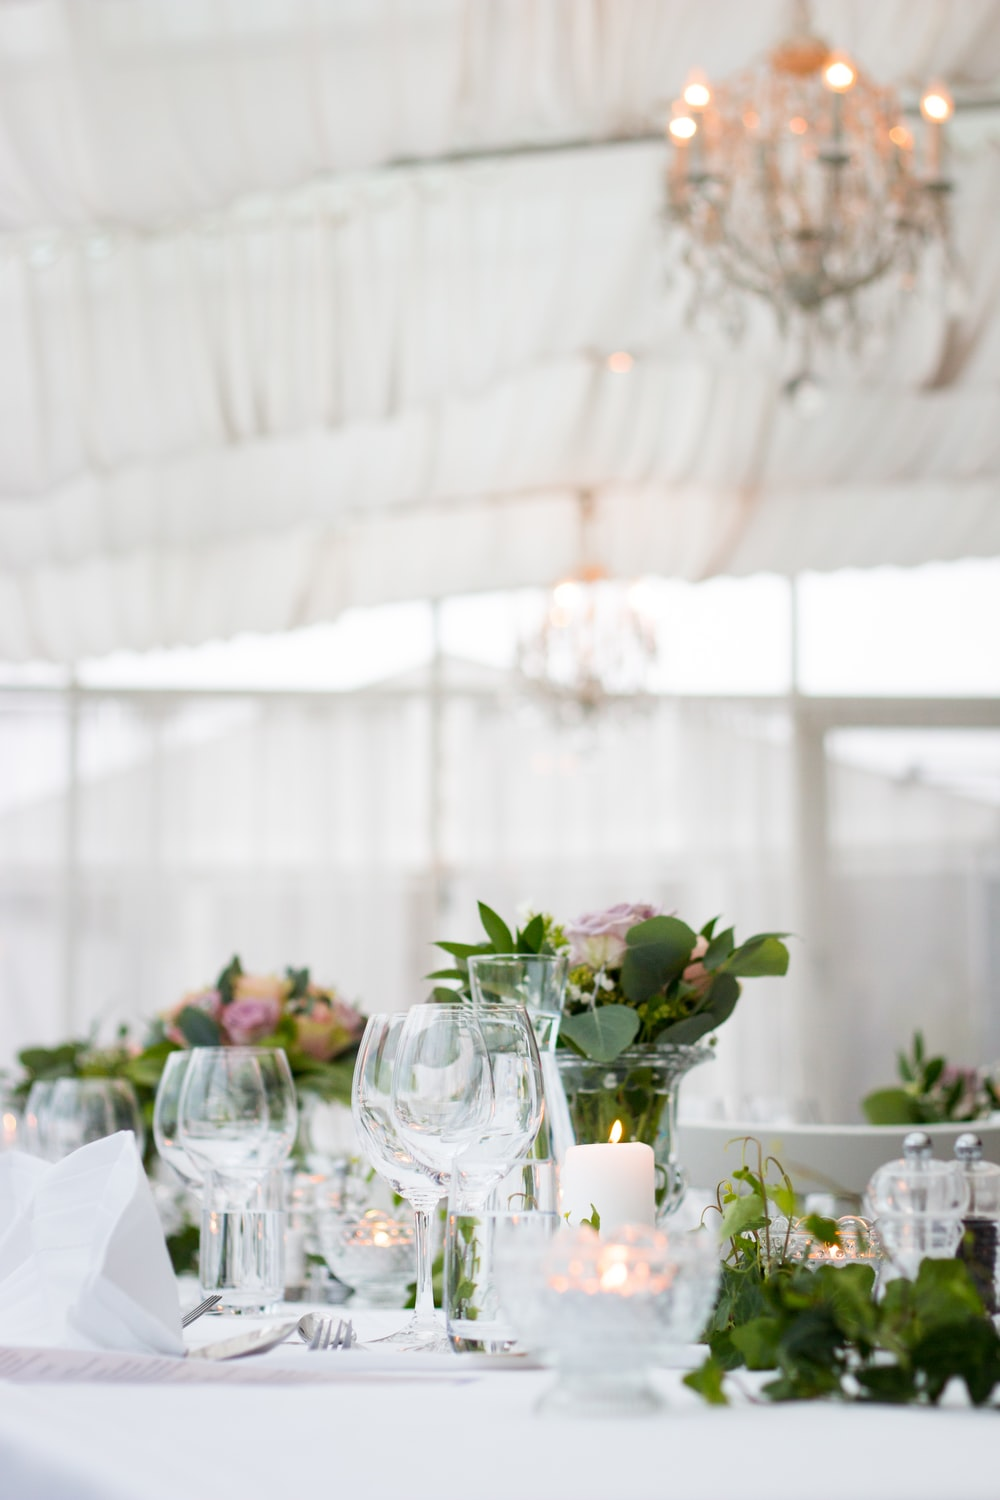 clear long-stem wine glasses on table